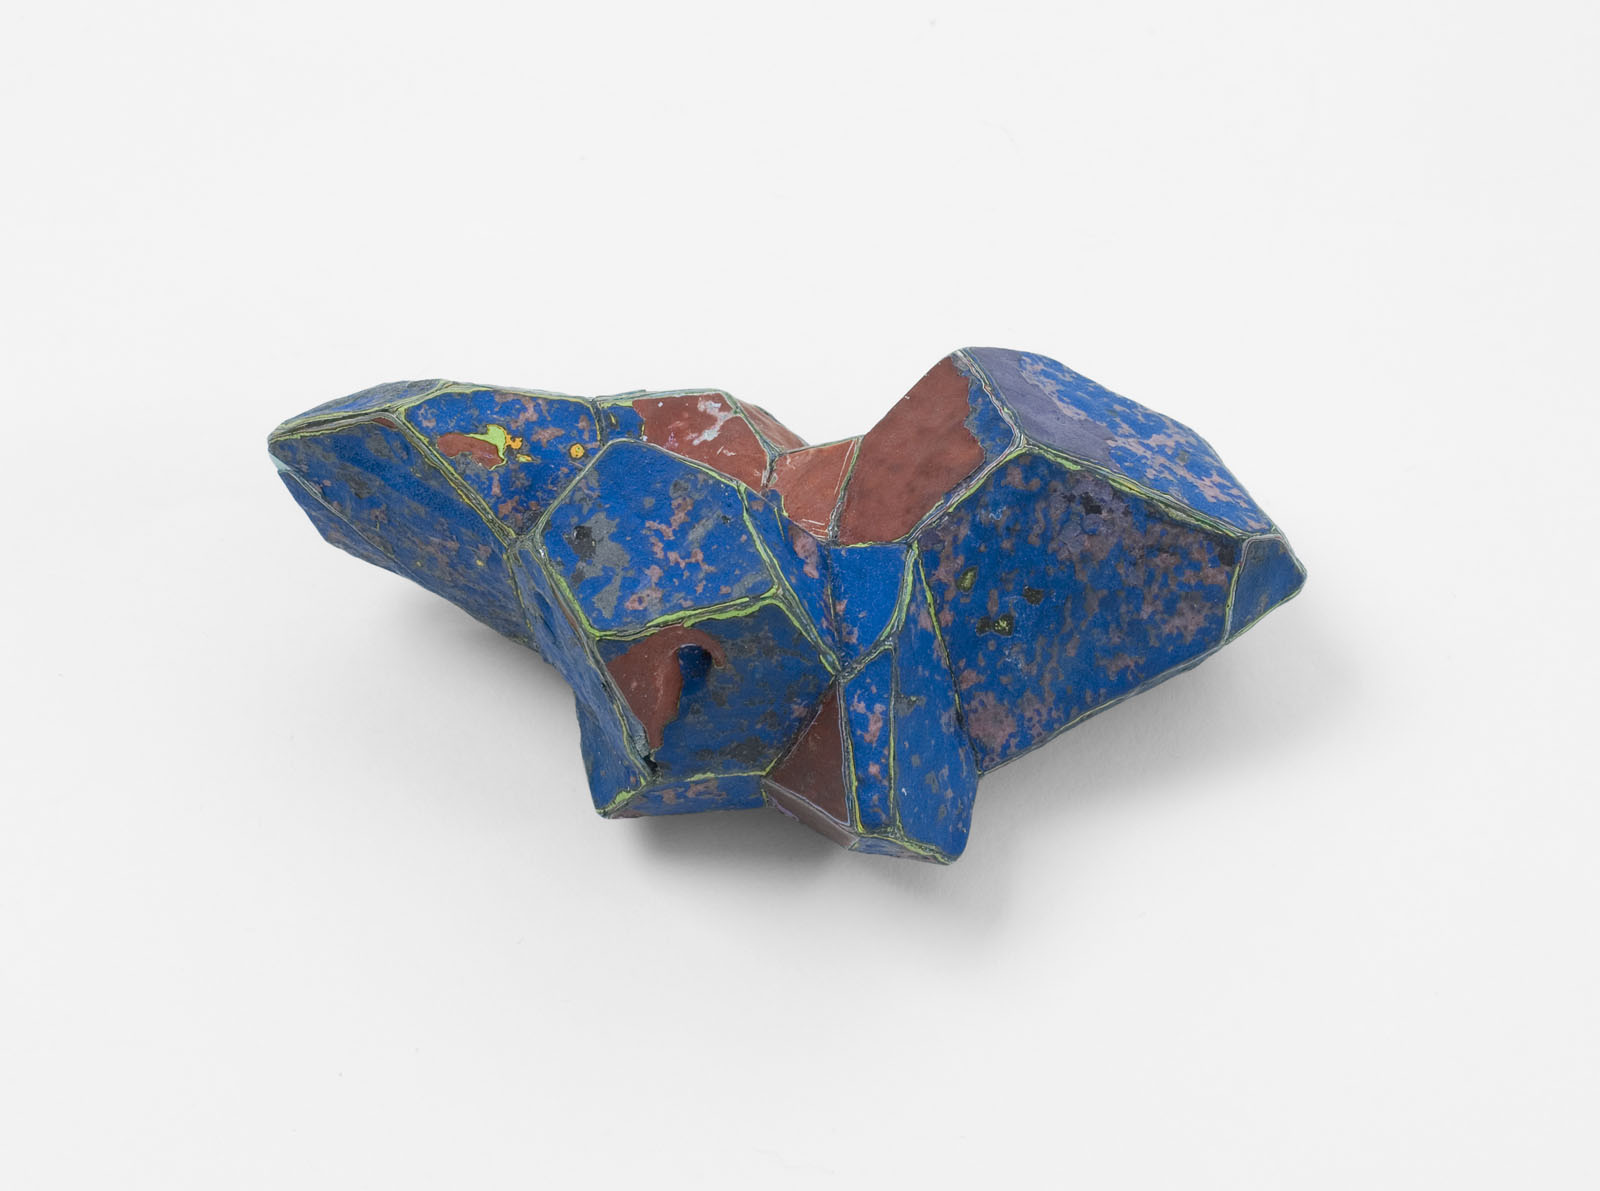 """Blue"" I Brooch, 2011 I Graffiti, silver, stainless steel I Photo: Mirei Takeuchi"